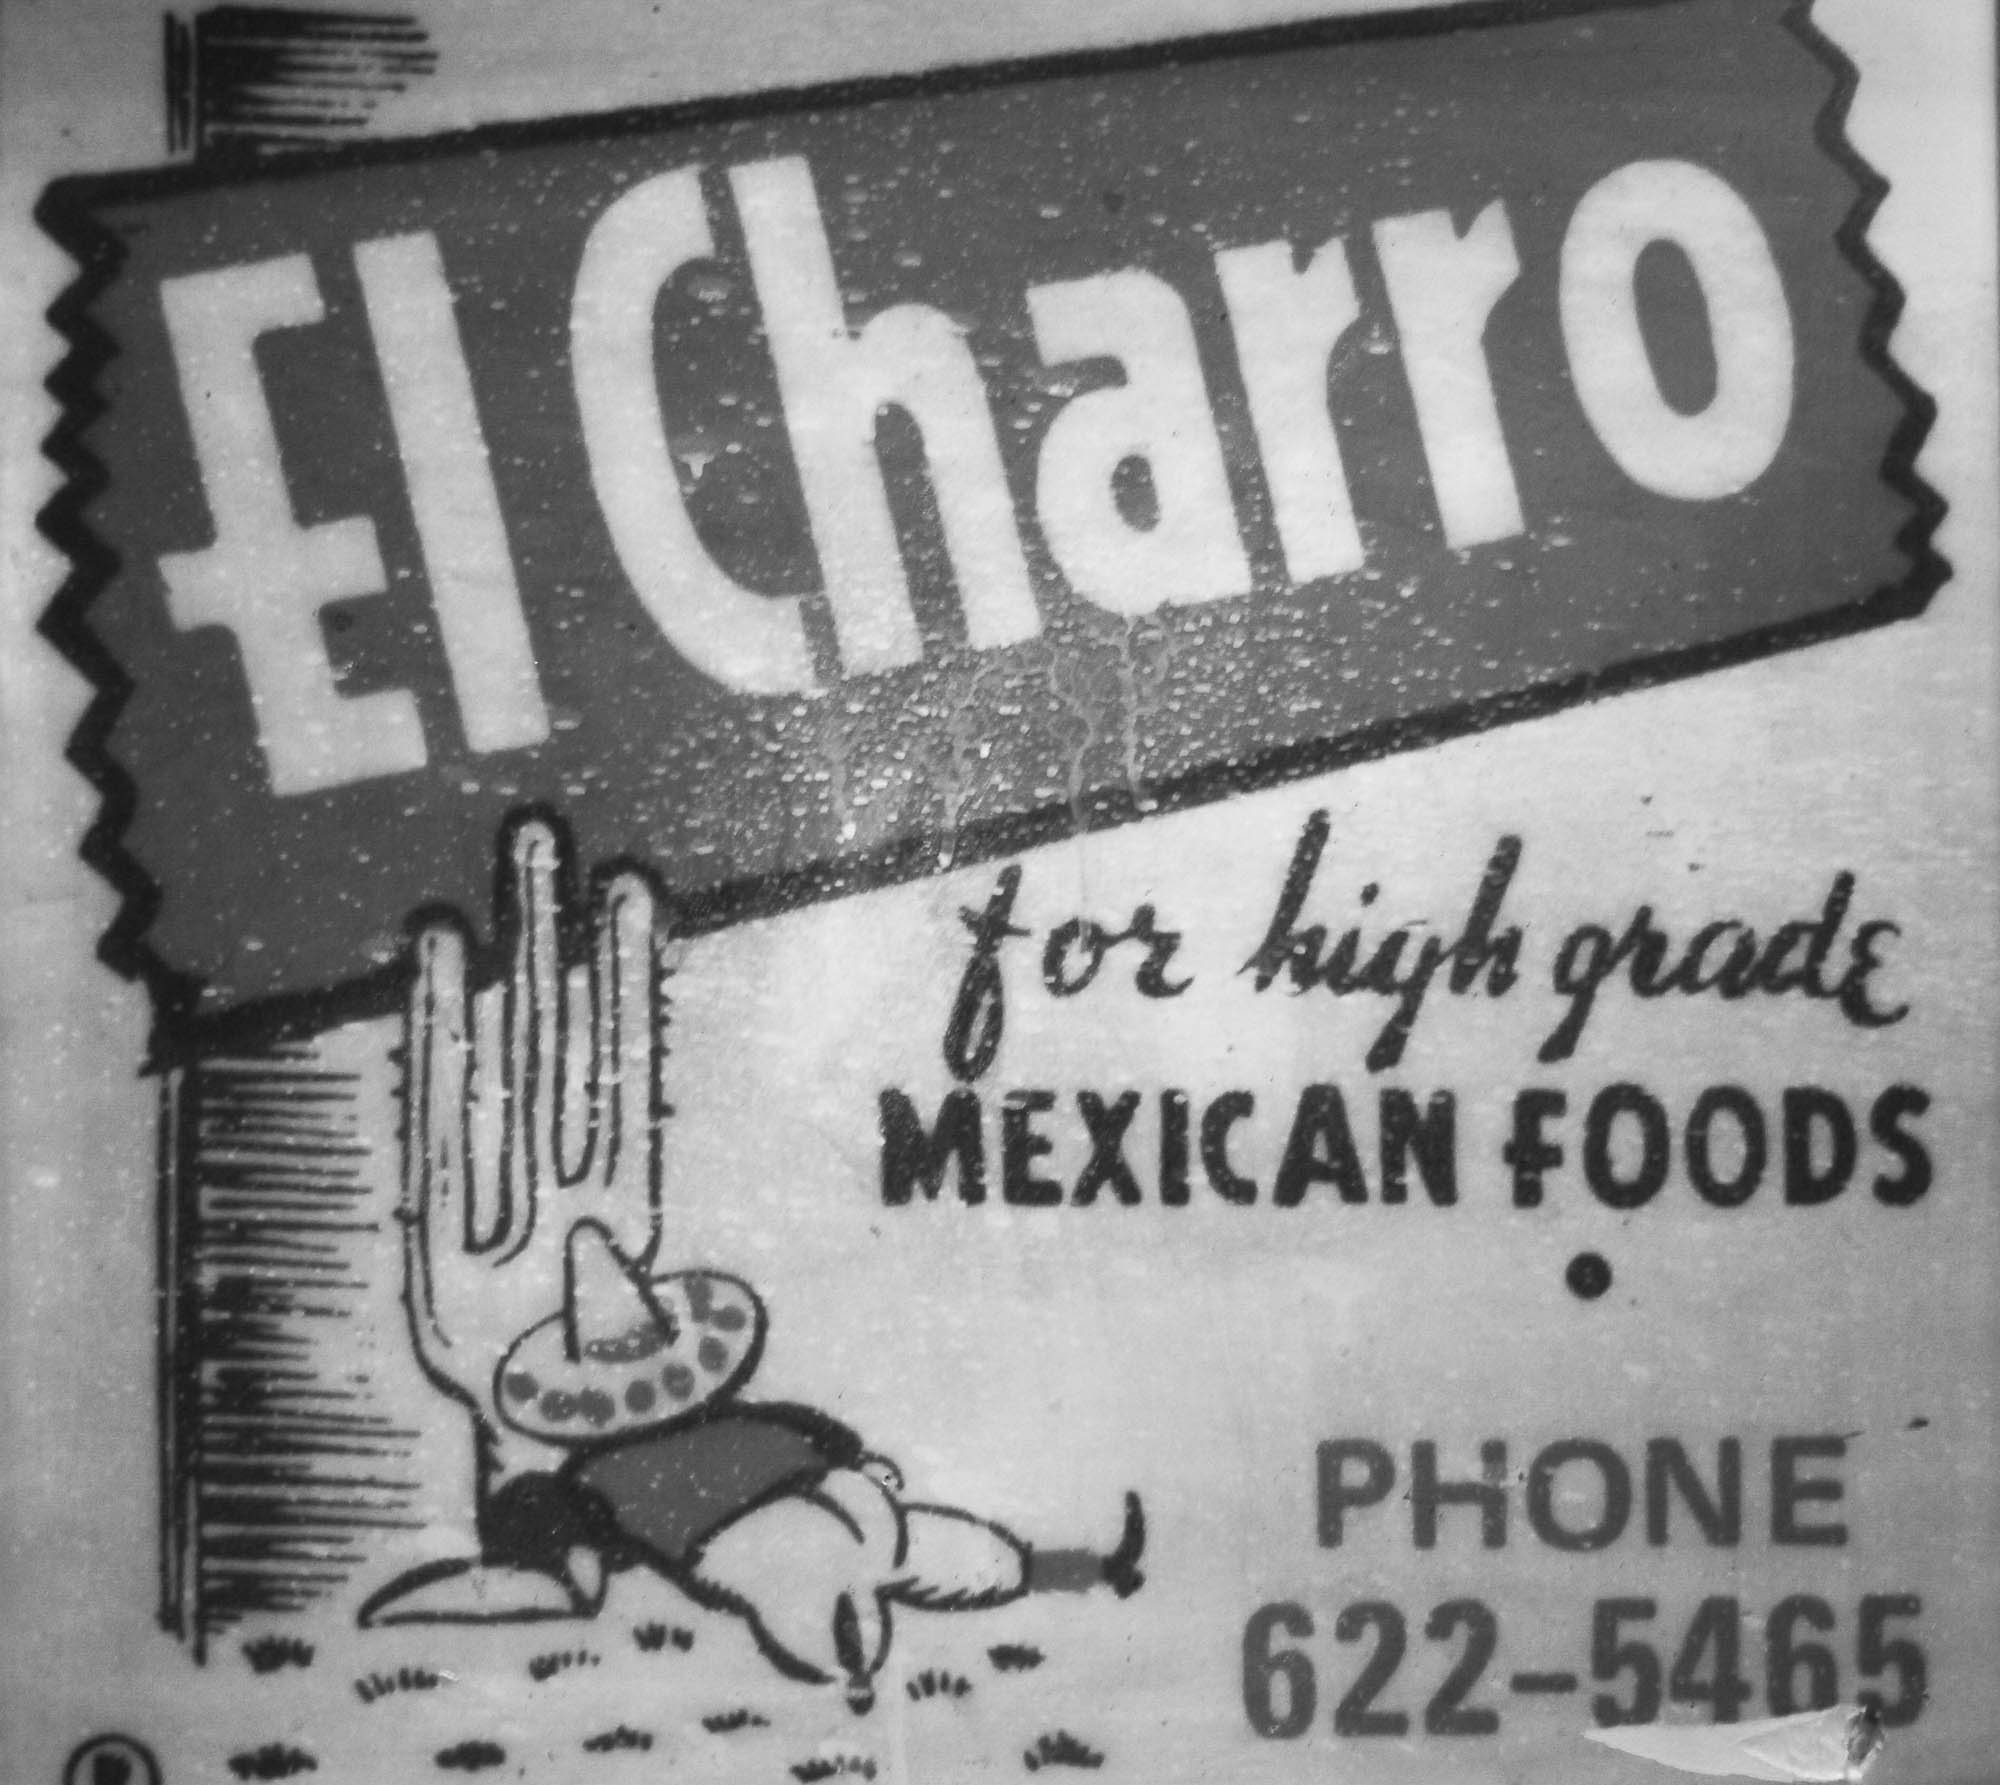 El Charro Cafe, Tucson, Arizona, Best Place to Eat, Best Restaurant in Tucson, Arizona, Near Sabino Canyon